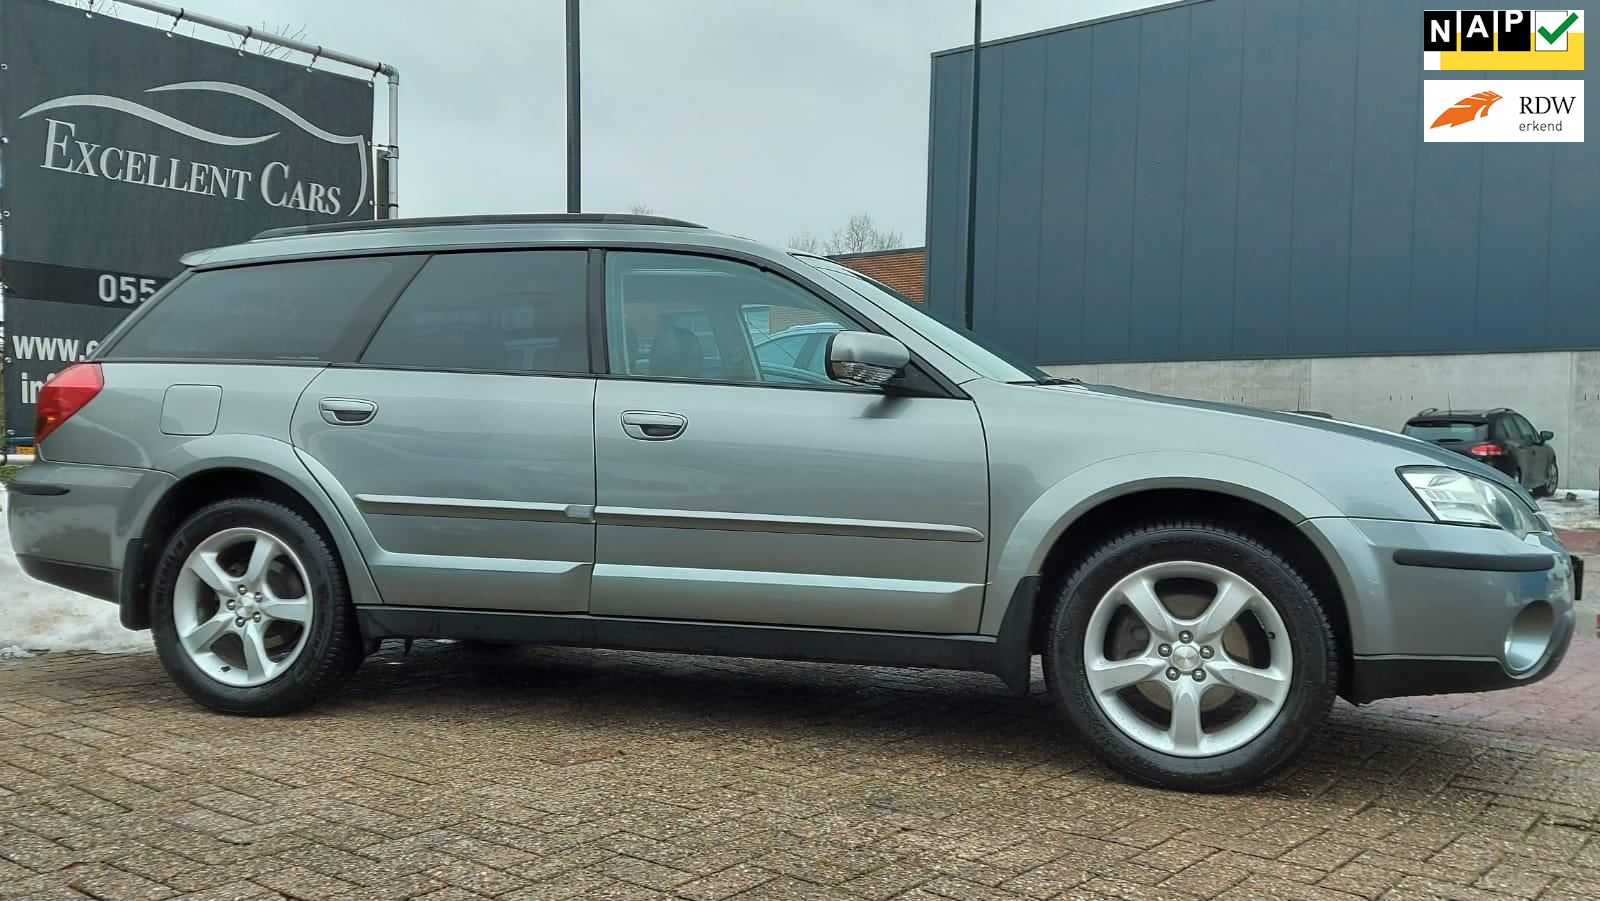 Subaru Outback occasion - Excellent Cars